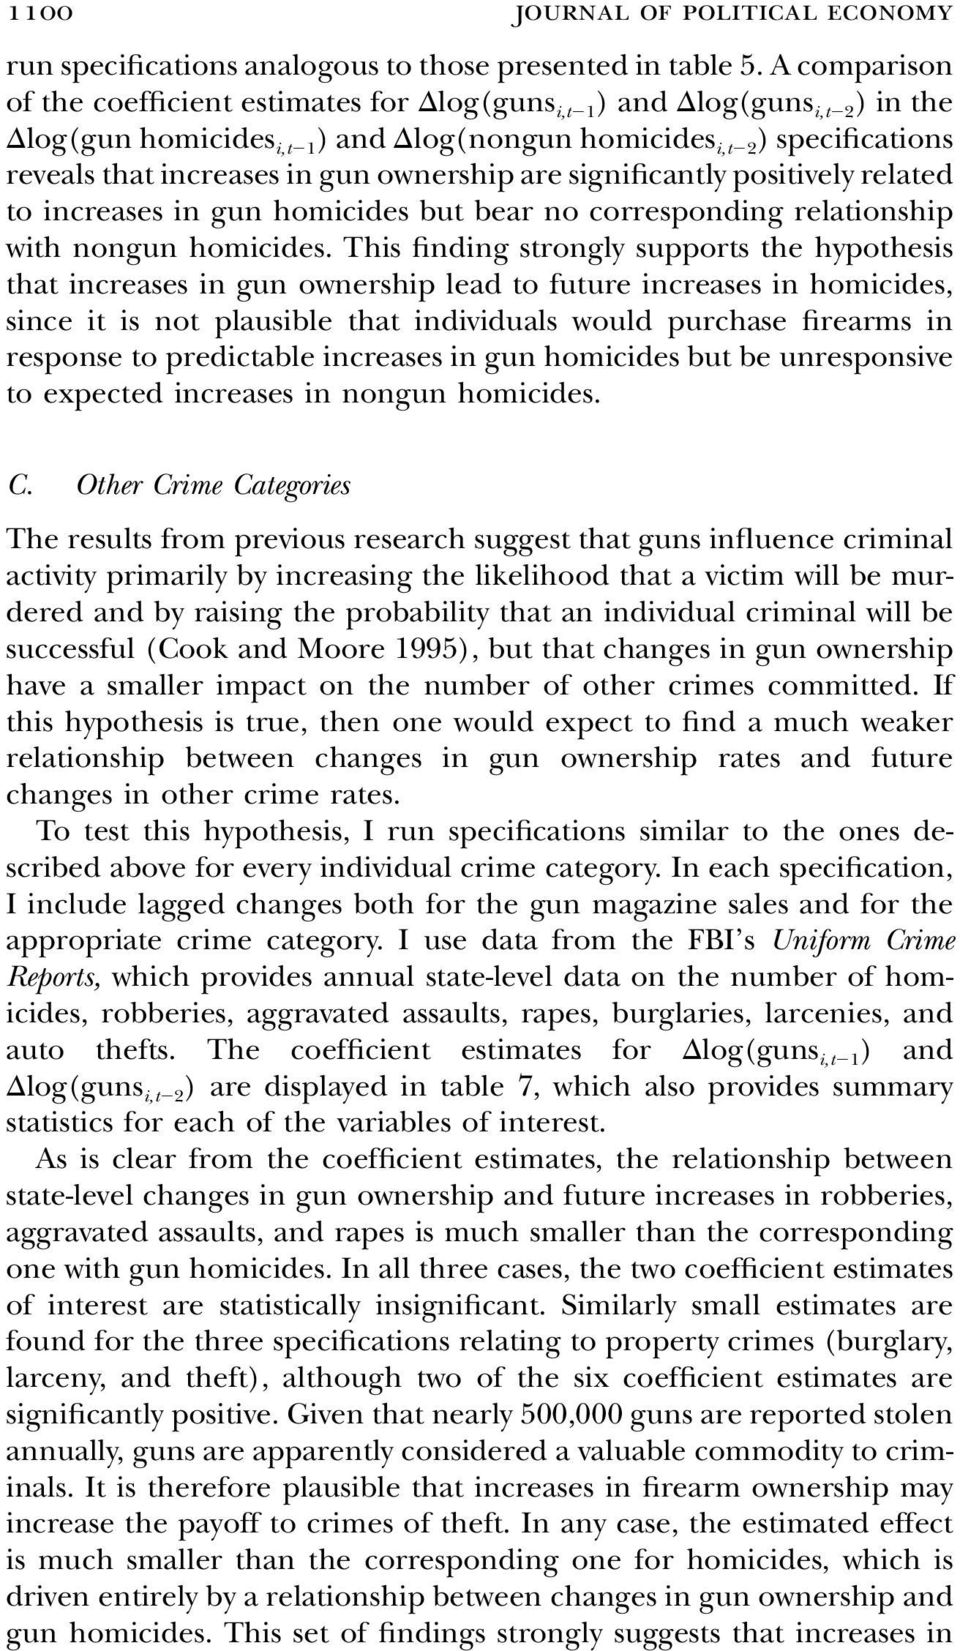 ownership are significantly positively related to increases in gun homicides but bear no corresponding relationship with nongun homicides.